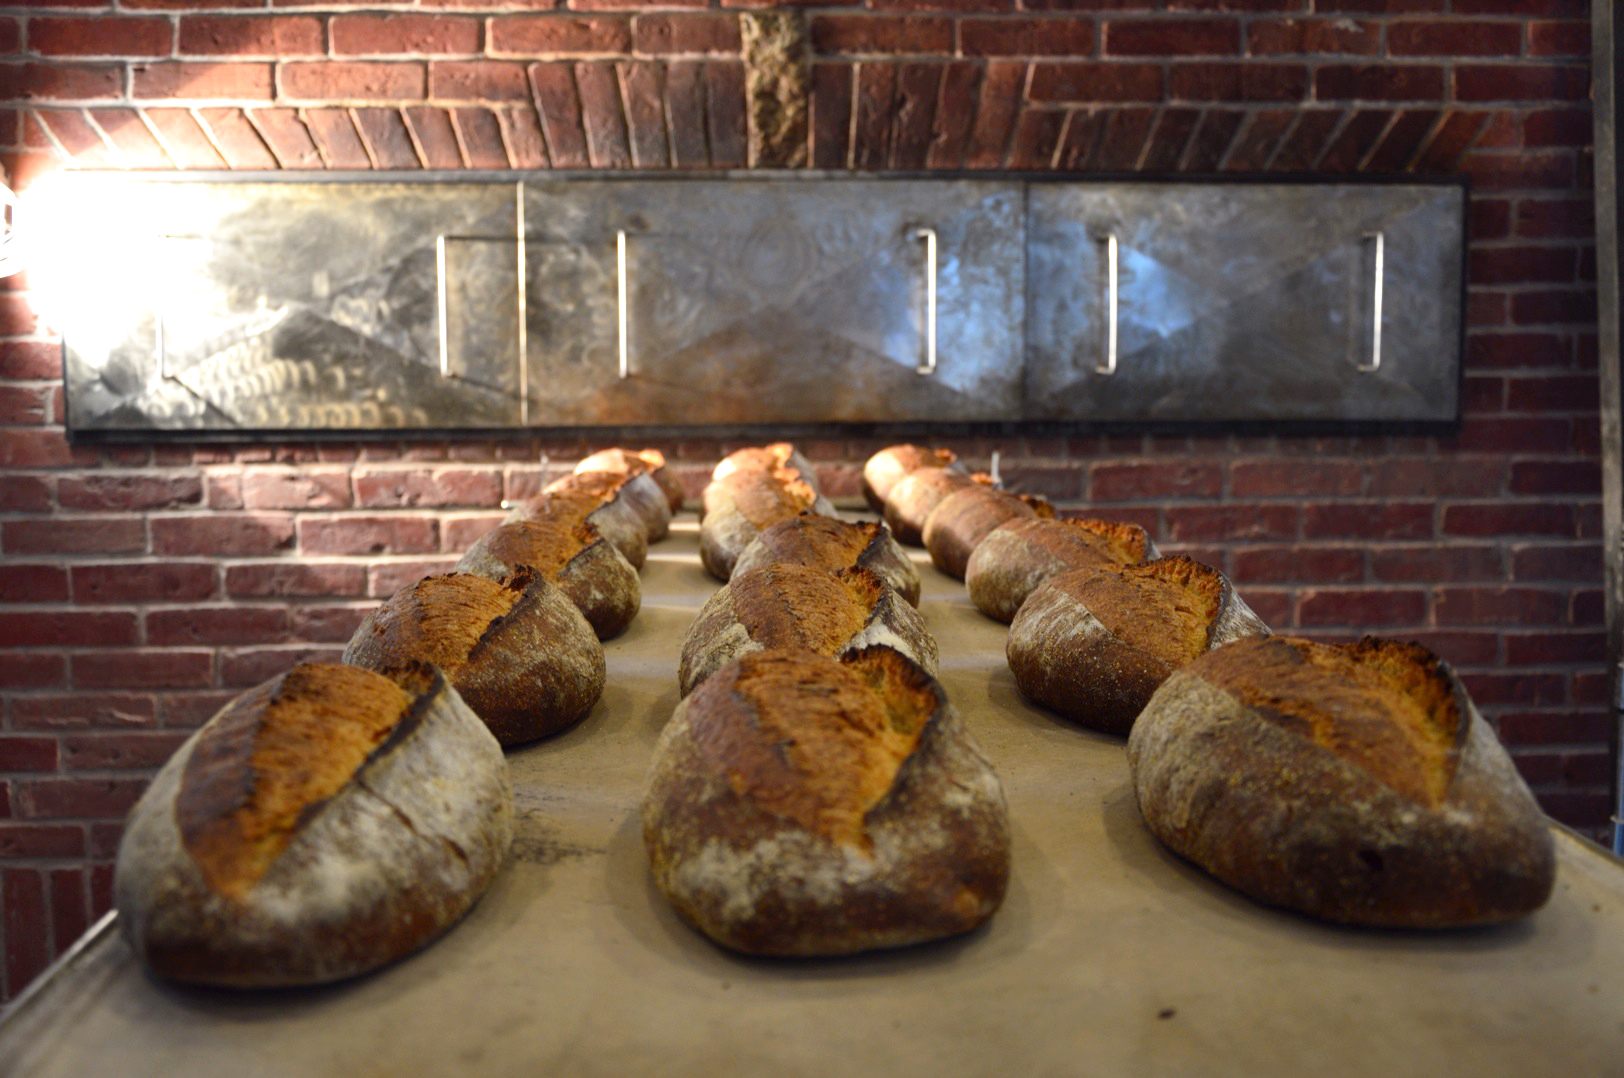 Breads baked at the Elmore Mountain Bread use freshly stone milled flour.